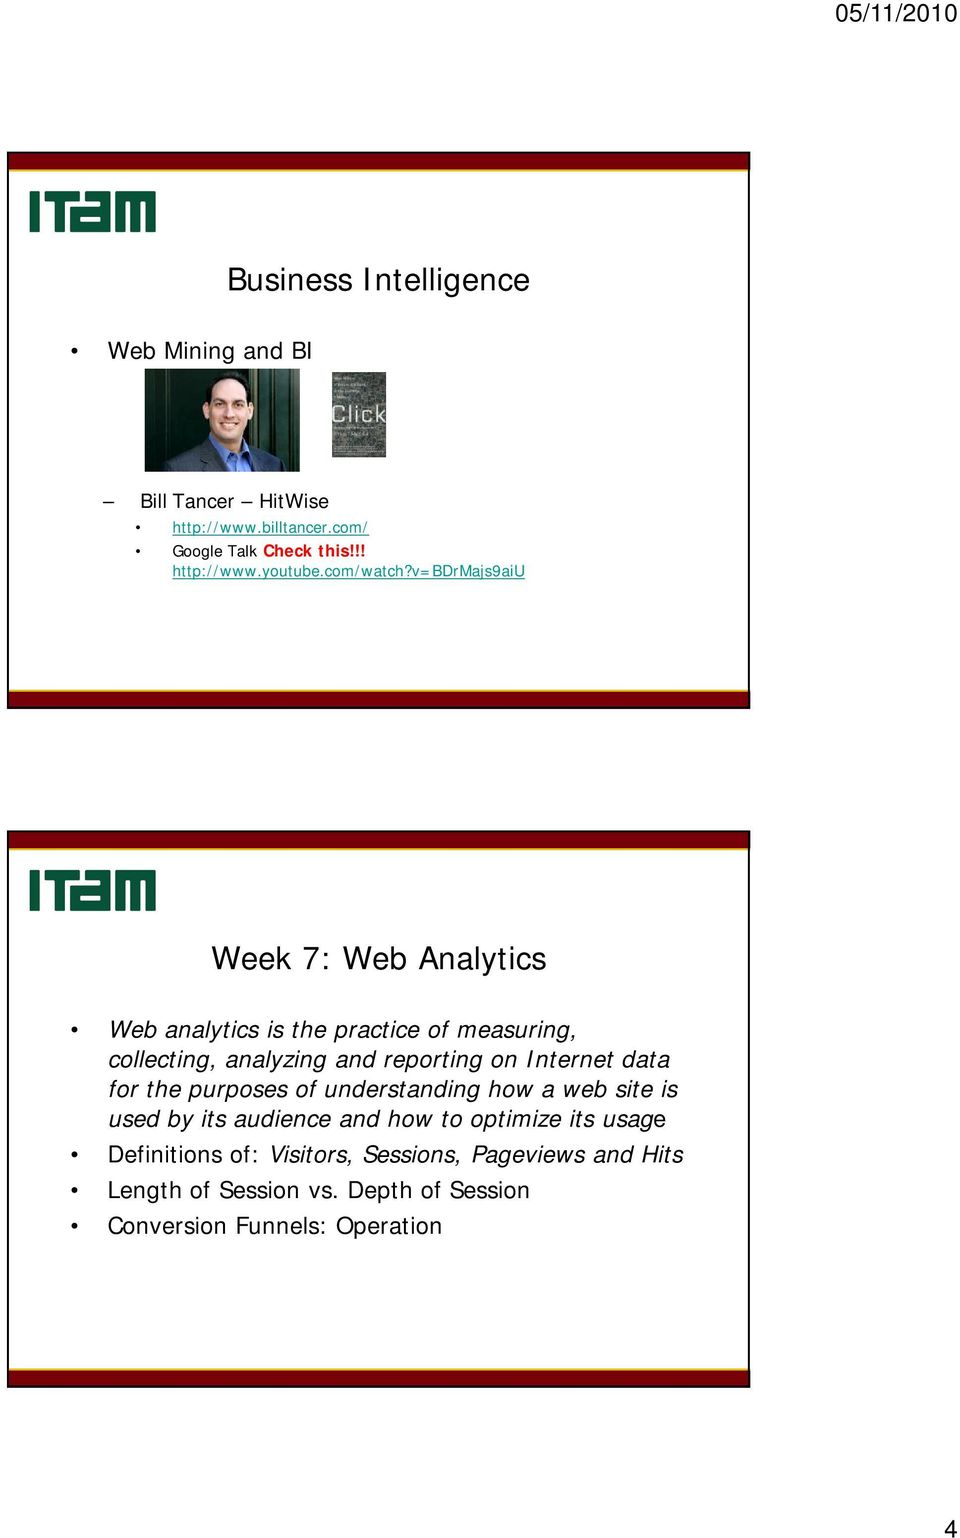 v=bdrmajs9aiu Week 7: Web Analytics Web analytics is the practice of measuring, collecting, analyzing and reporting on